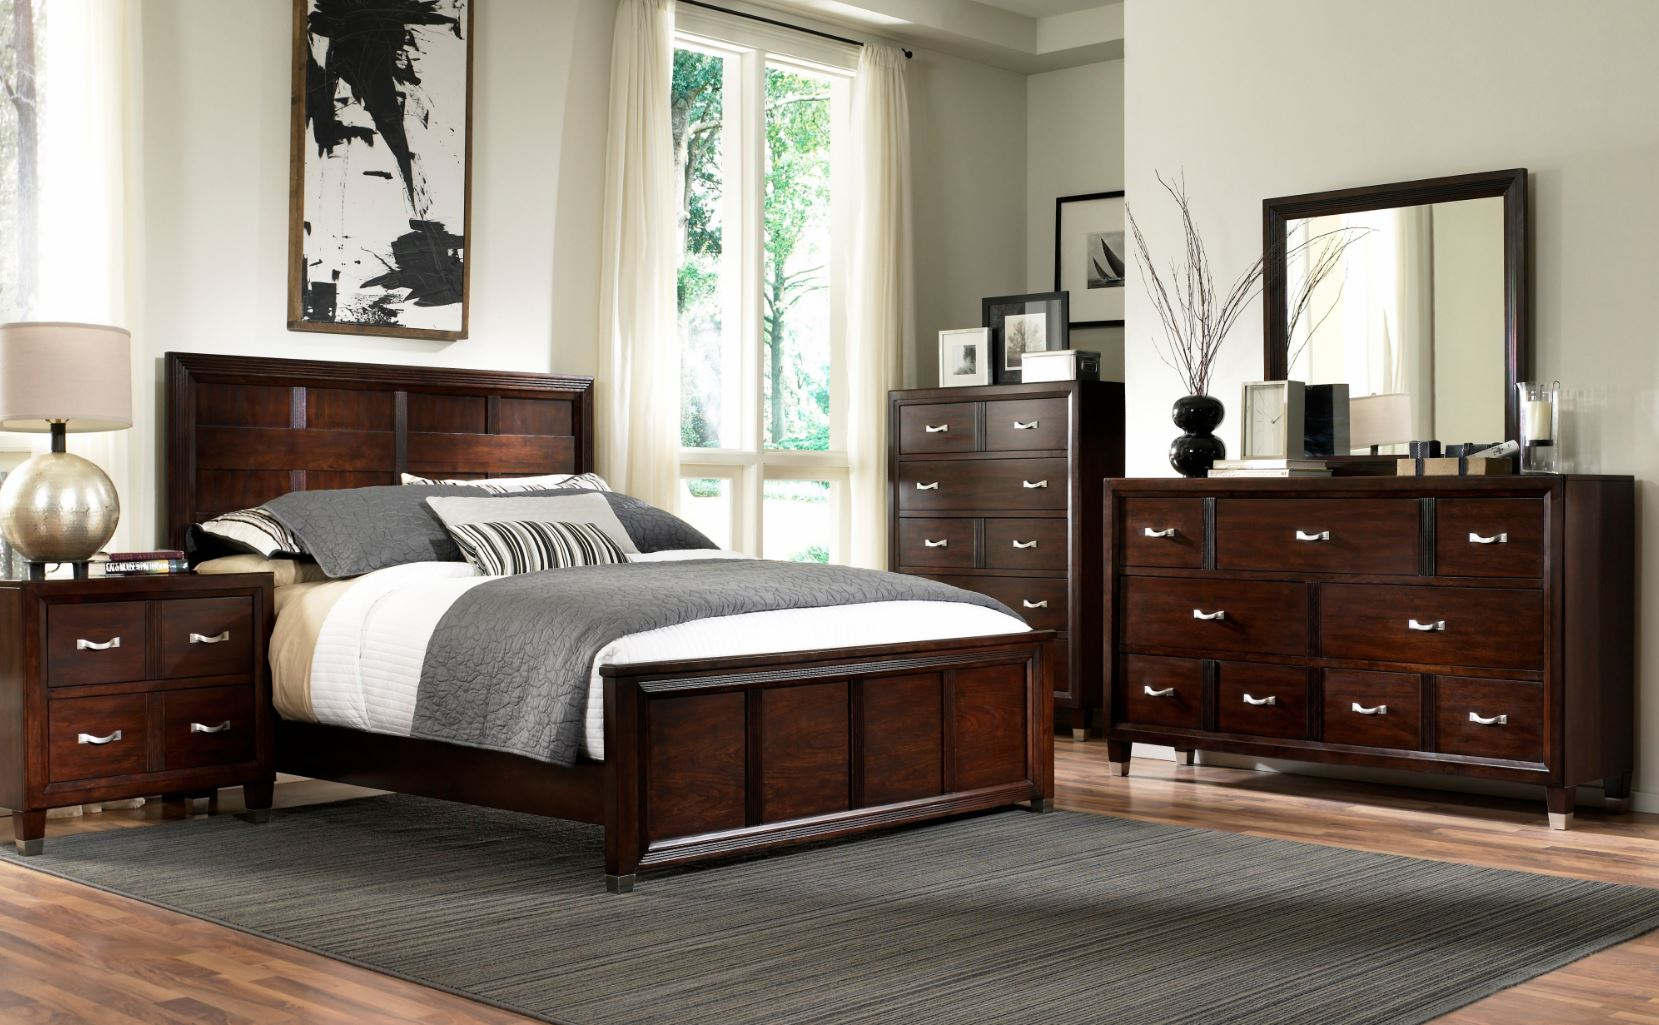 Wonderful Broyhill Furniture East Lake Bedroom